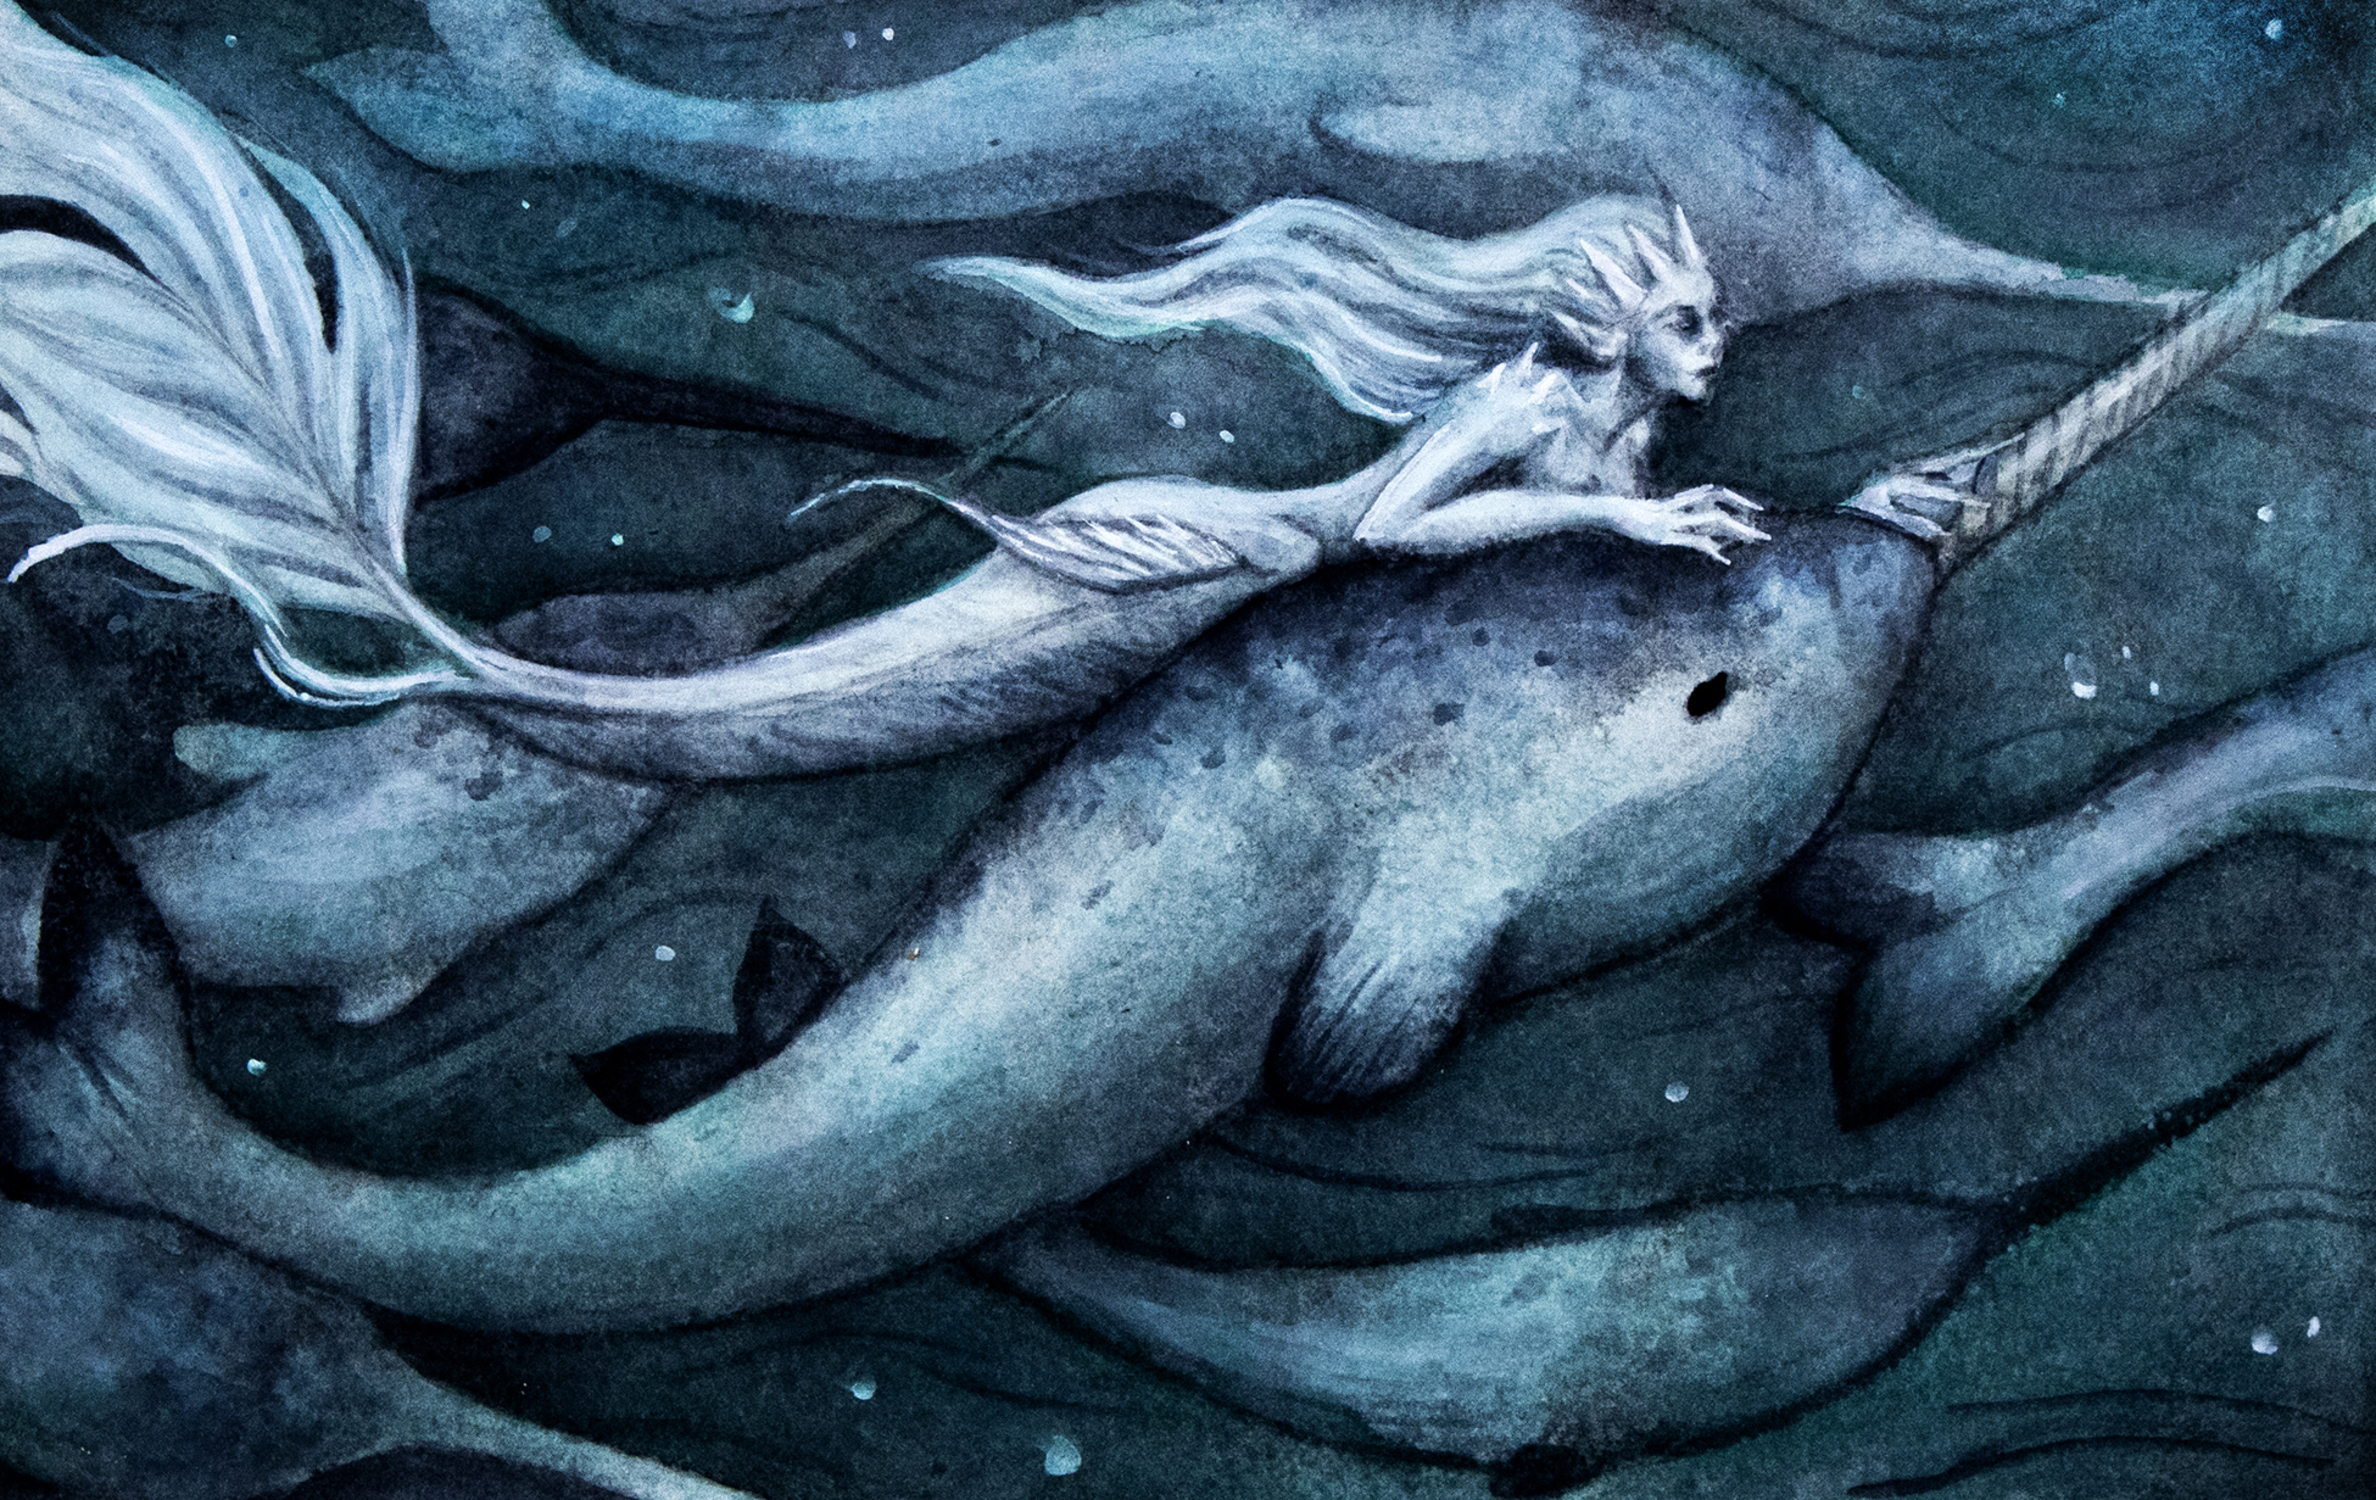 In Arctic Waters Artwork by Caitlin Fowler